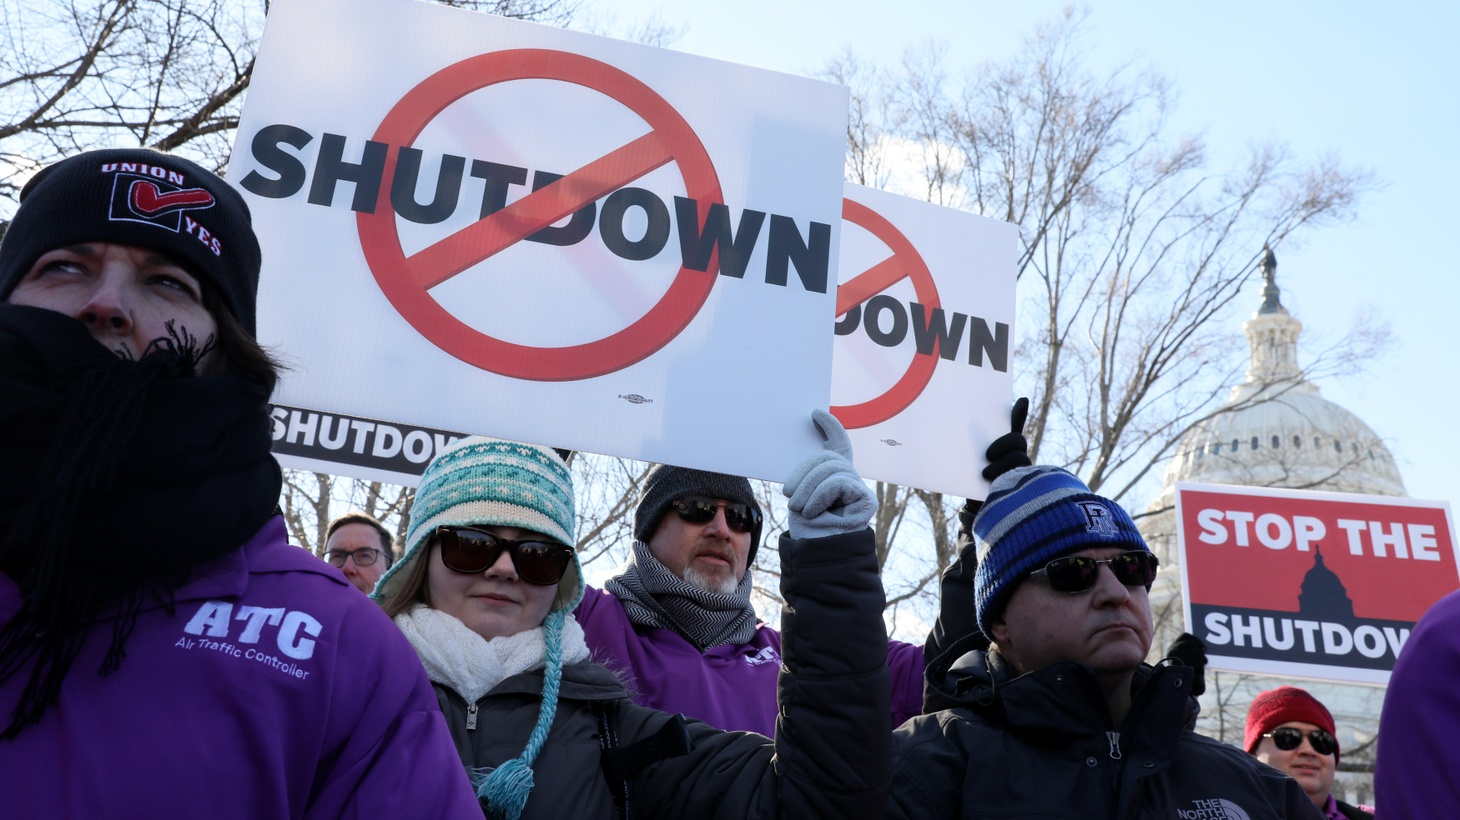 Federal air traffic controller union members protest the partial U.S. federal government shutdown in a rally at the U.S. Capitol in Washington, U.S. January 10, 2019.